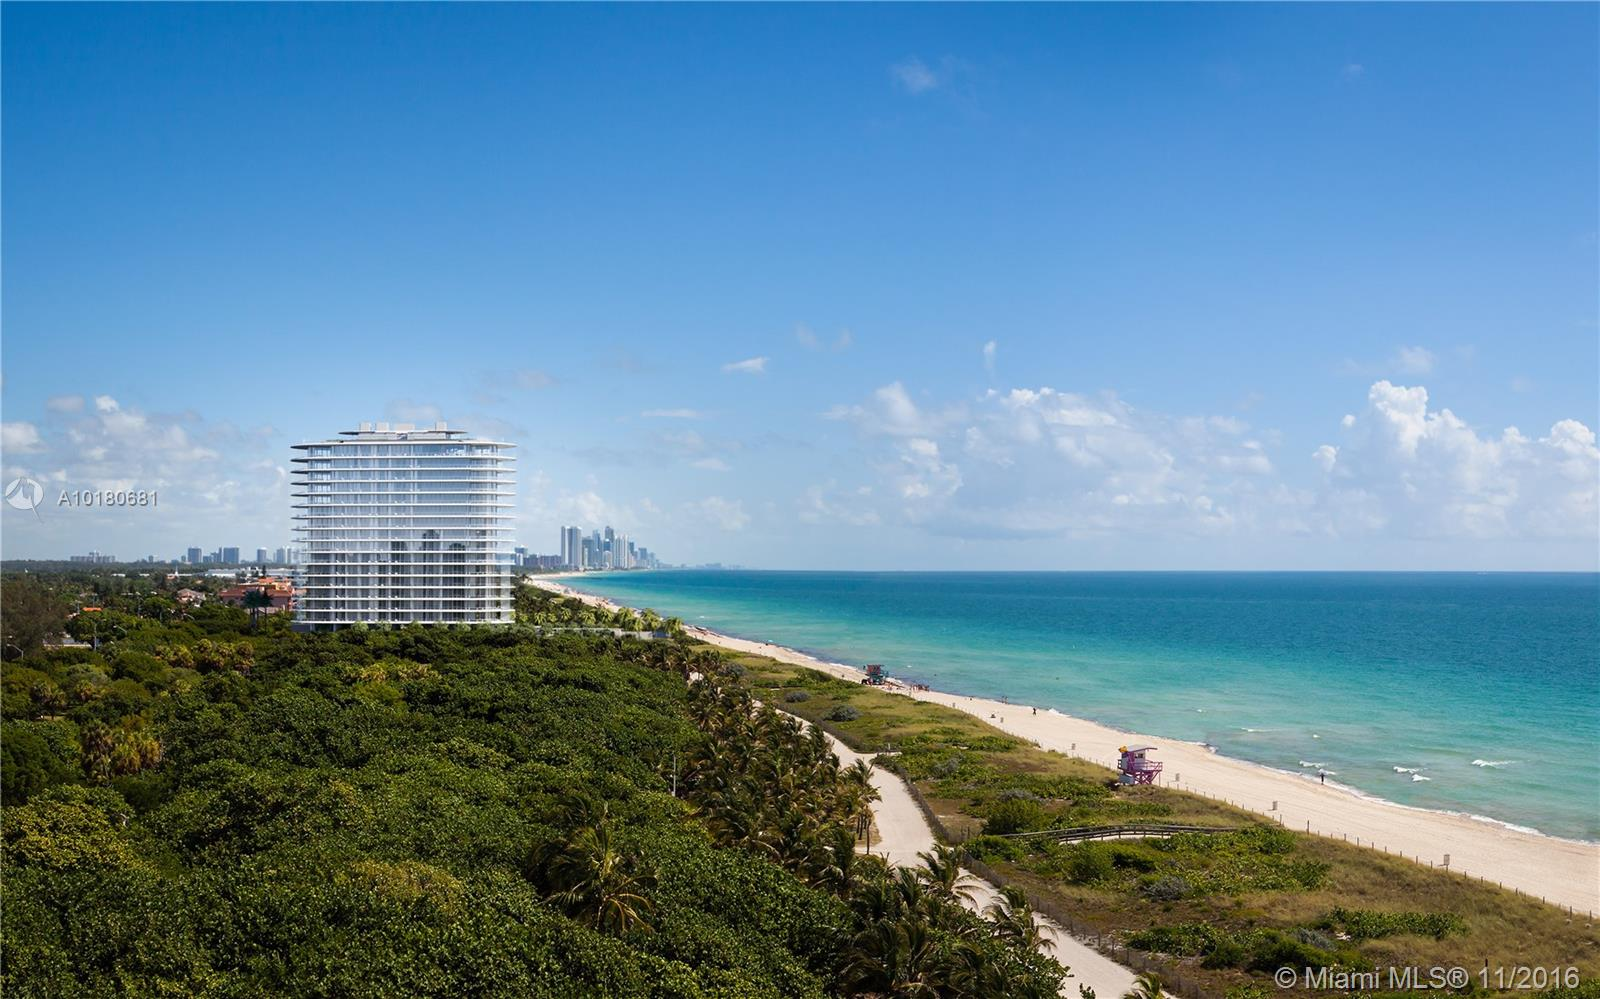 8701 Collins Ave, 601 - Miami Beach, Florida